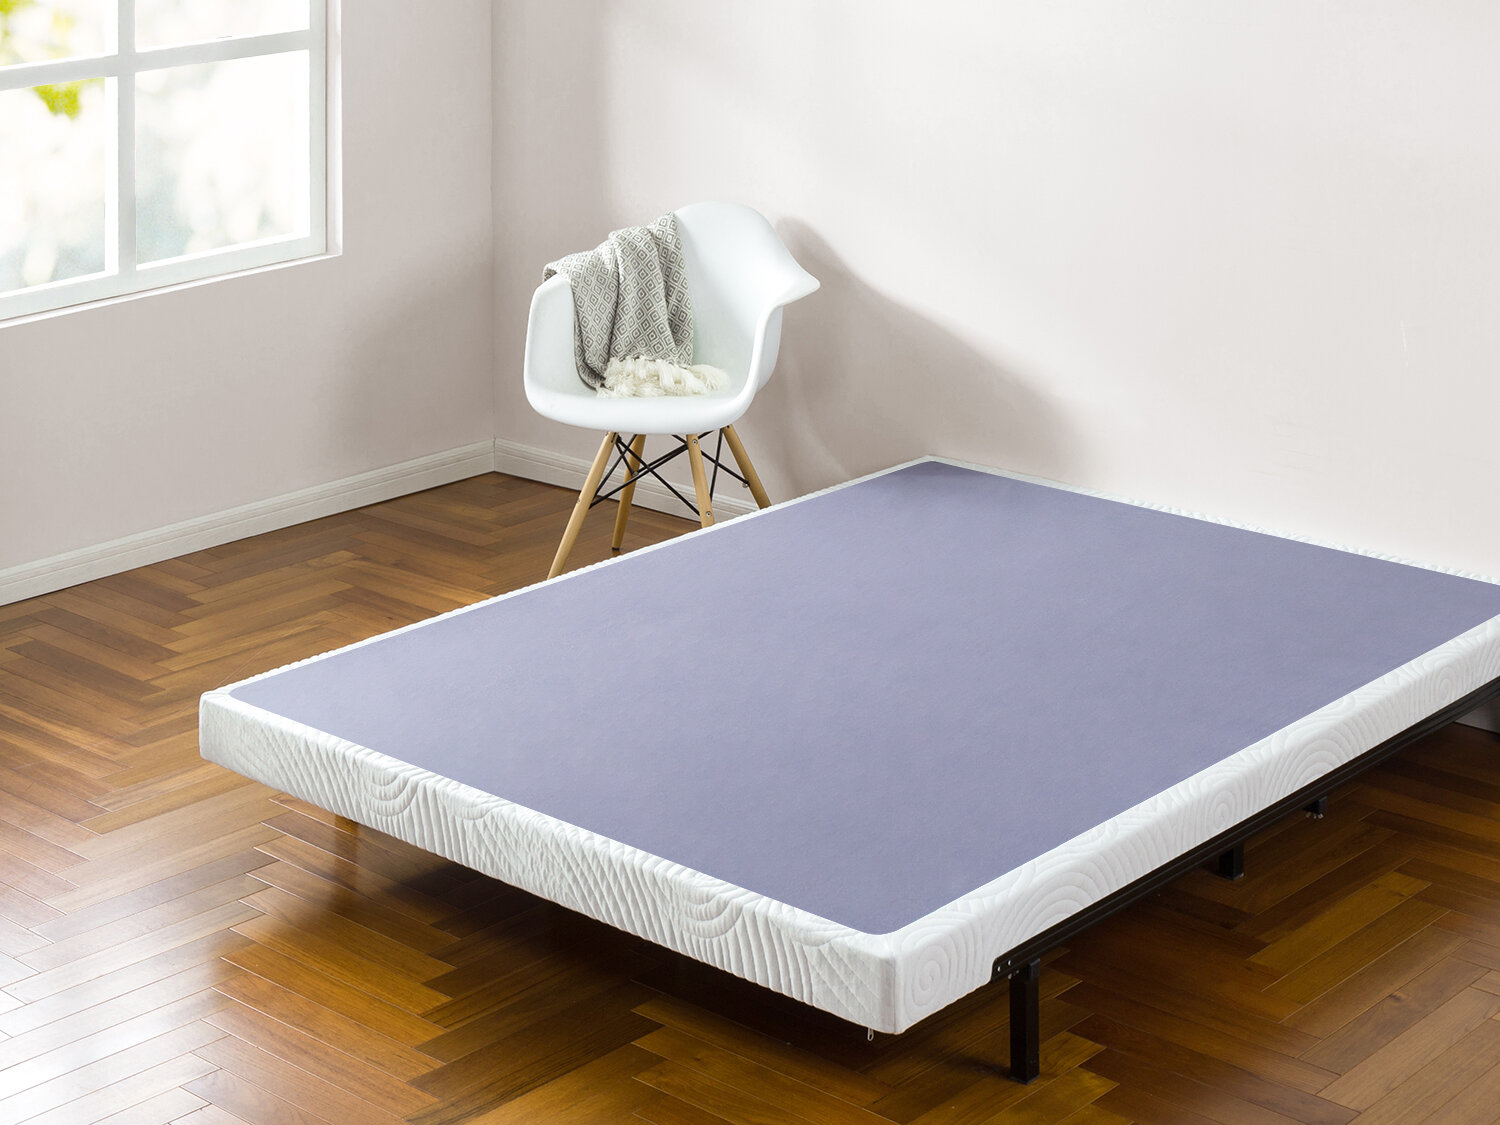 mattress pillow oaks product mattresses boxspring item cushion set top sets firm queen terrific whispering sealy and